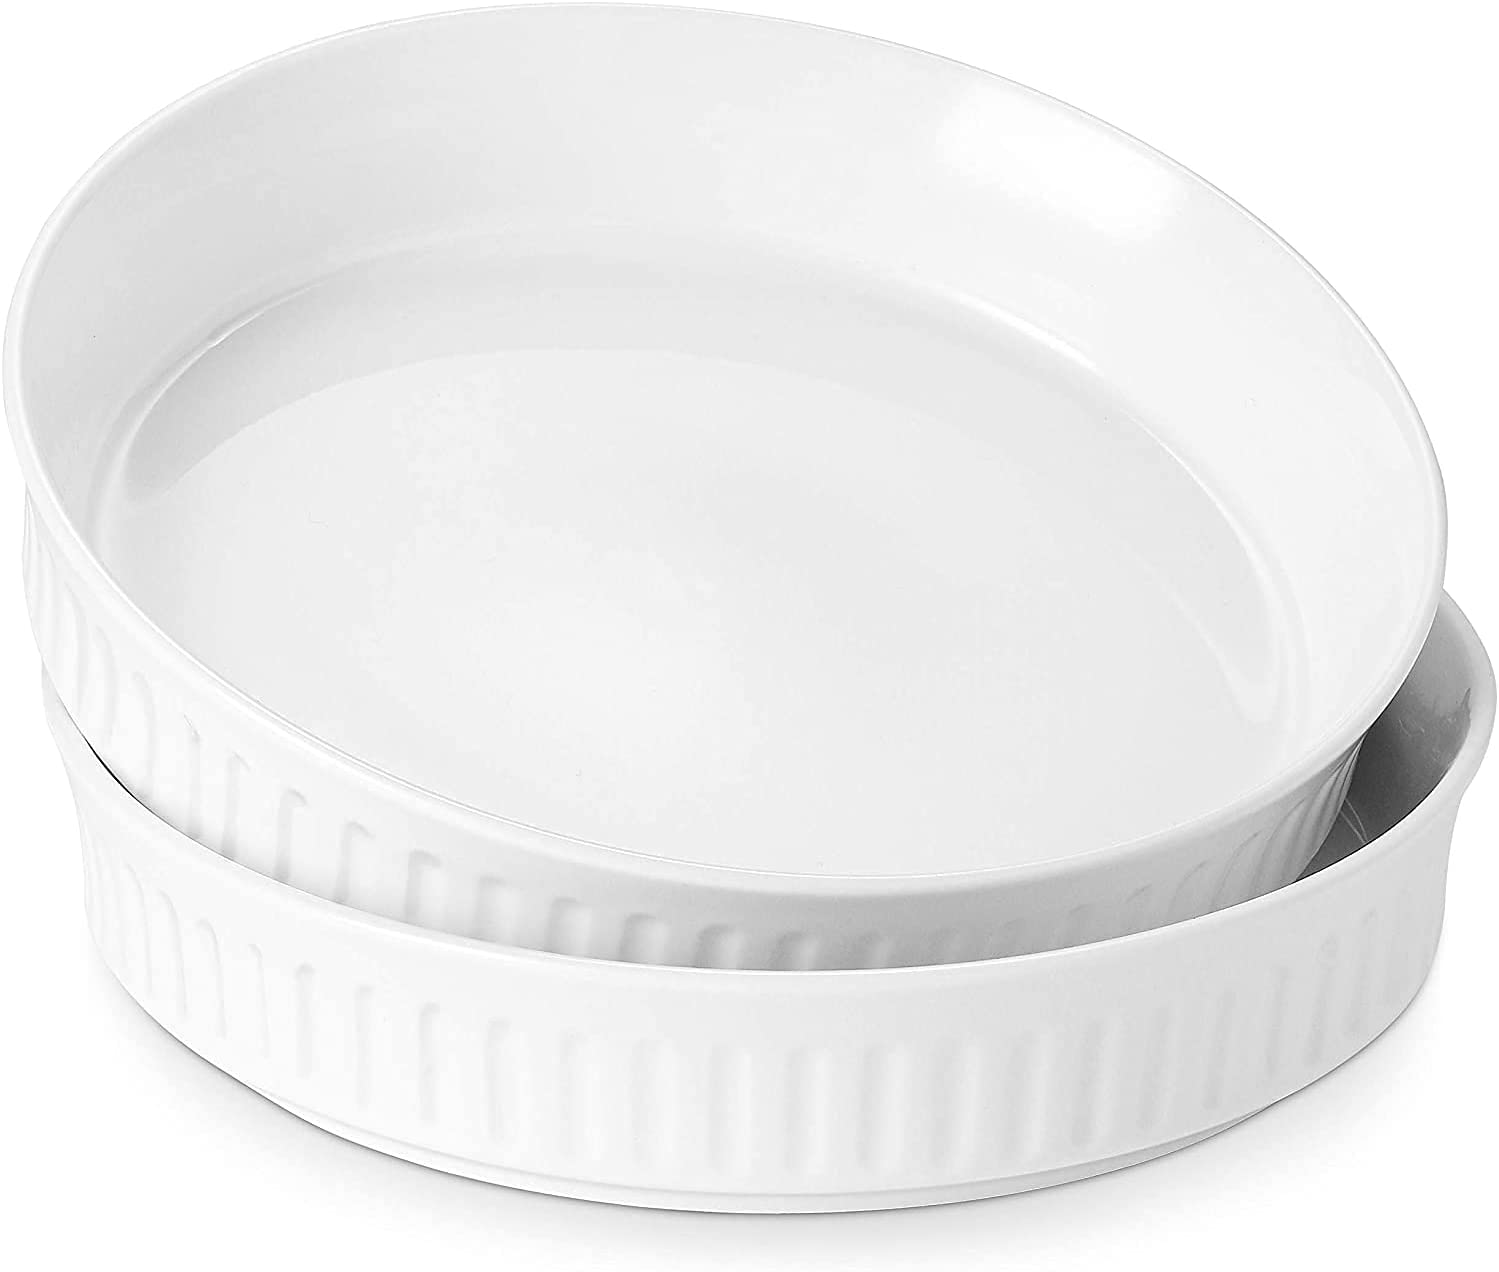 DOWAN Quiche Pan Set of 2-8 Baking Pie Inches P Ceramic Special sale item for Ranking TOP11